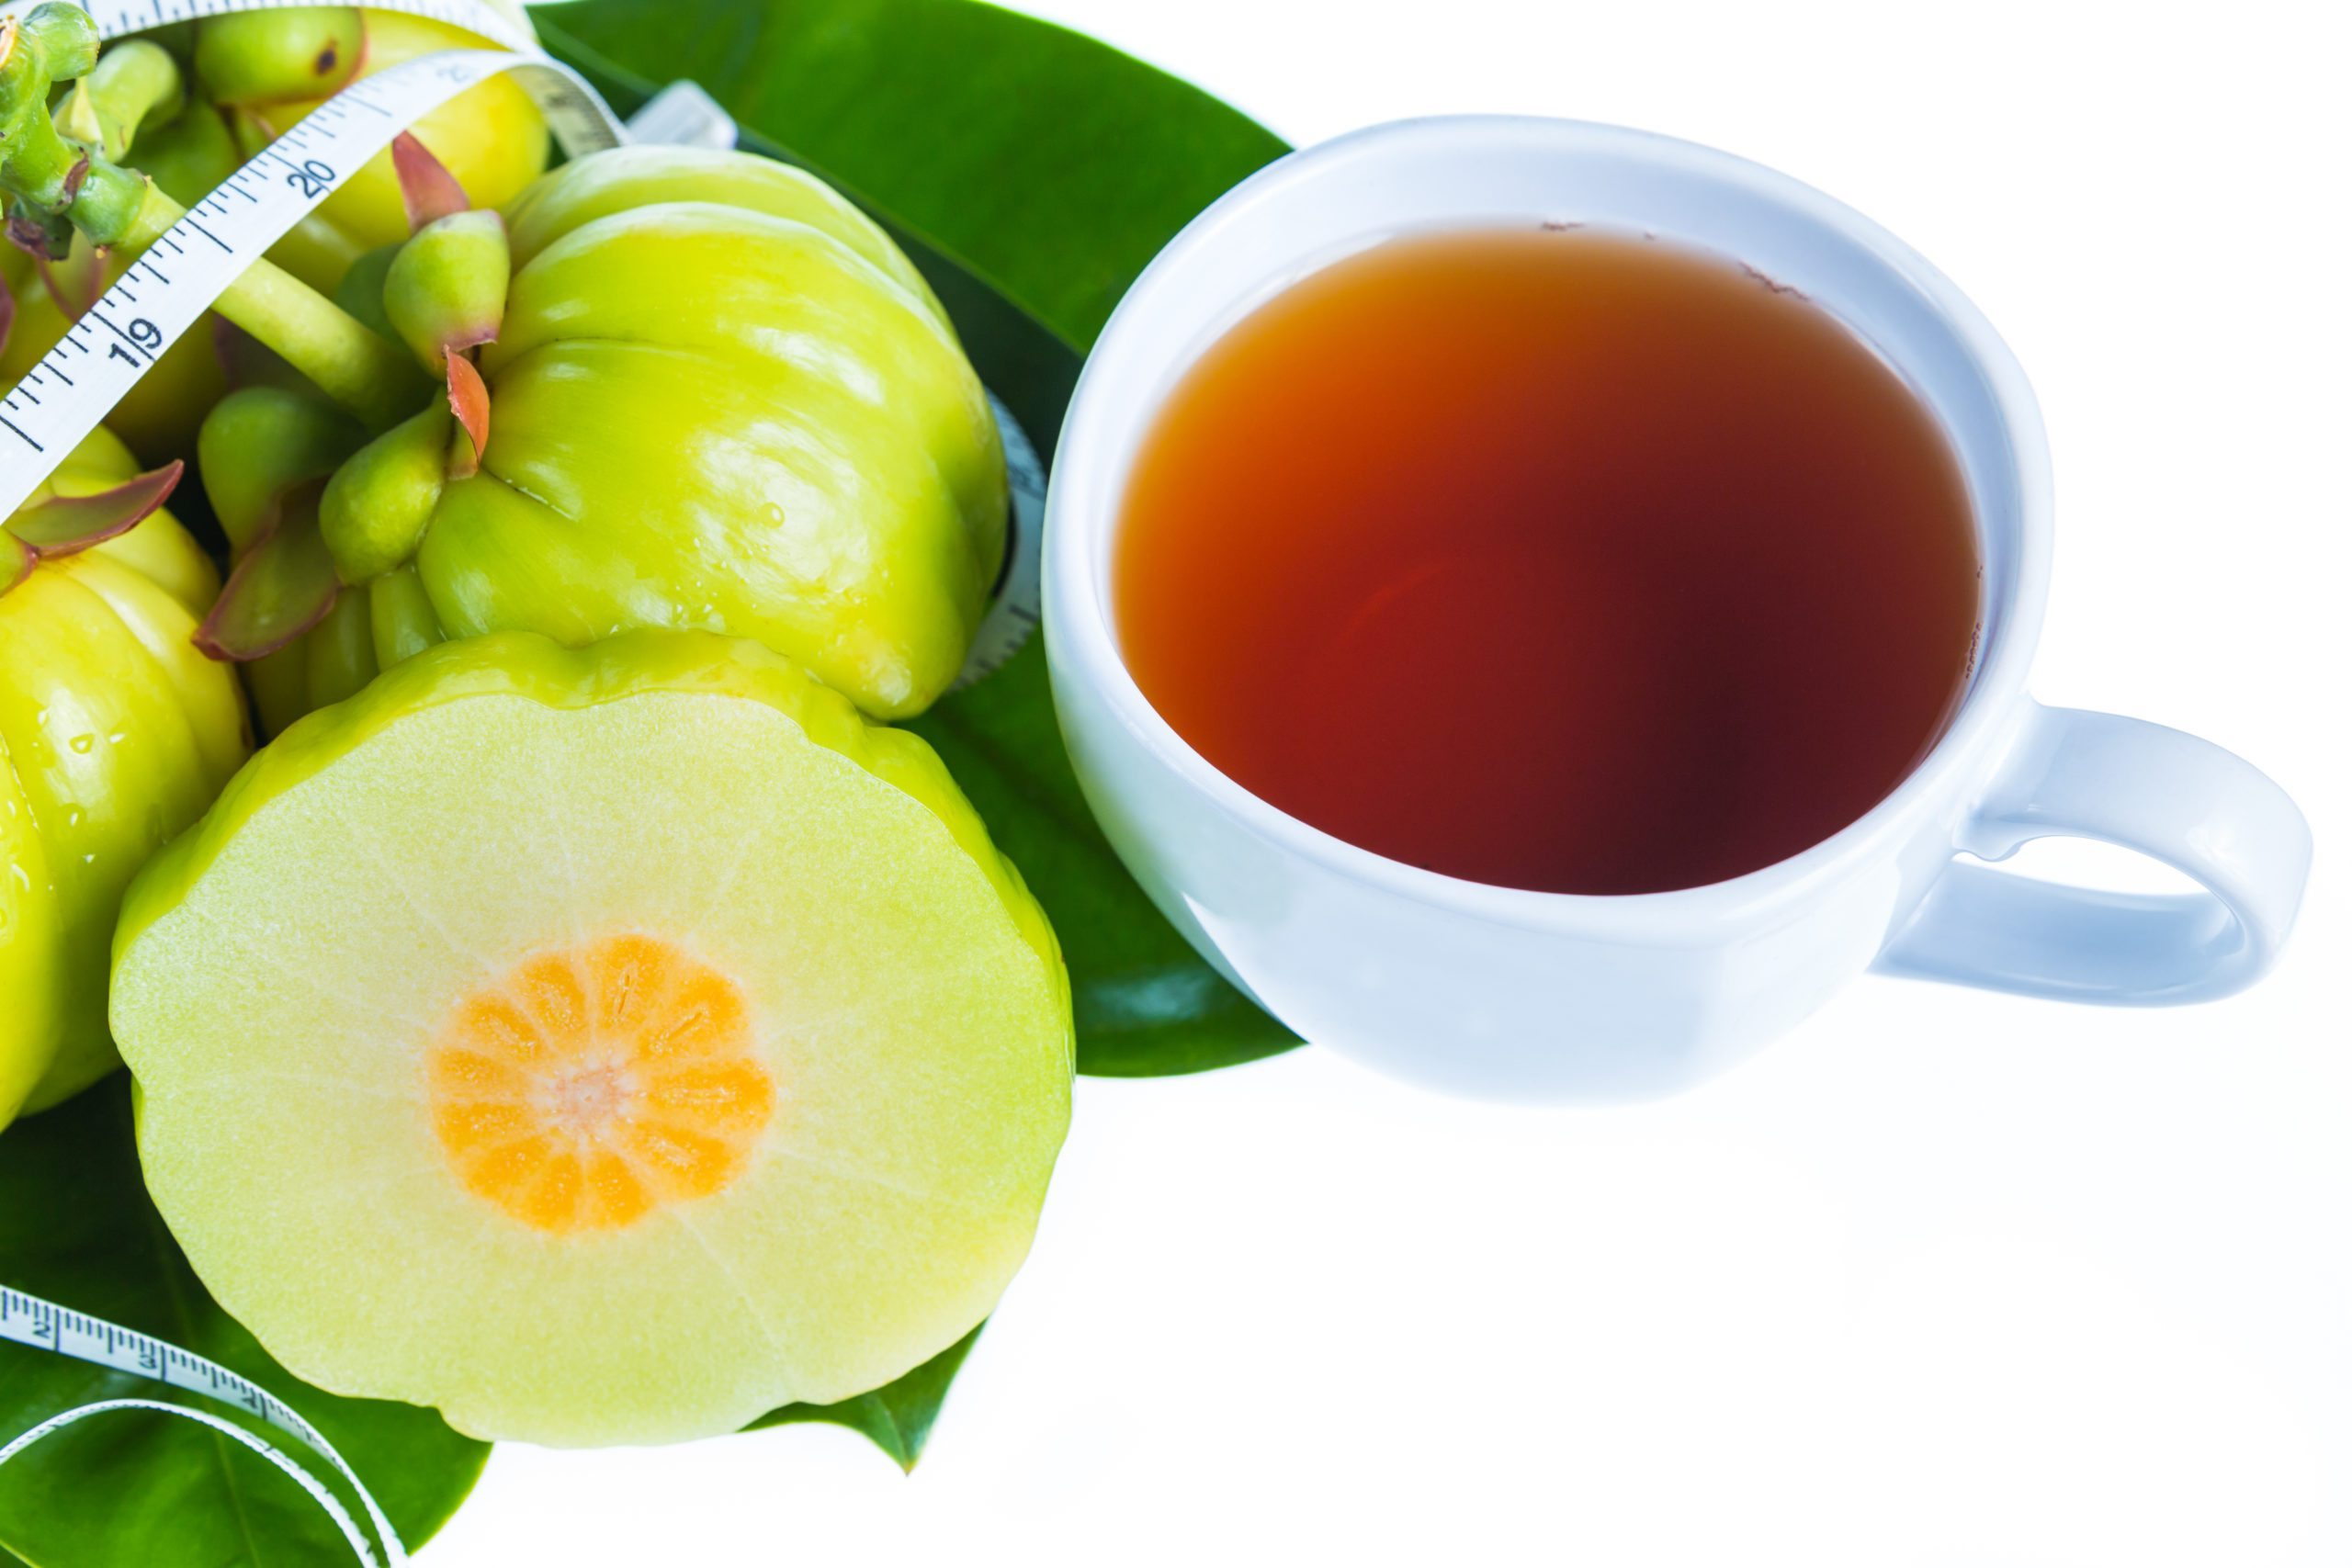 Garcinia Cambogia has been in the limelight for all the right reasons, but How Can Garcinia Cambogia Improve Your Health?